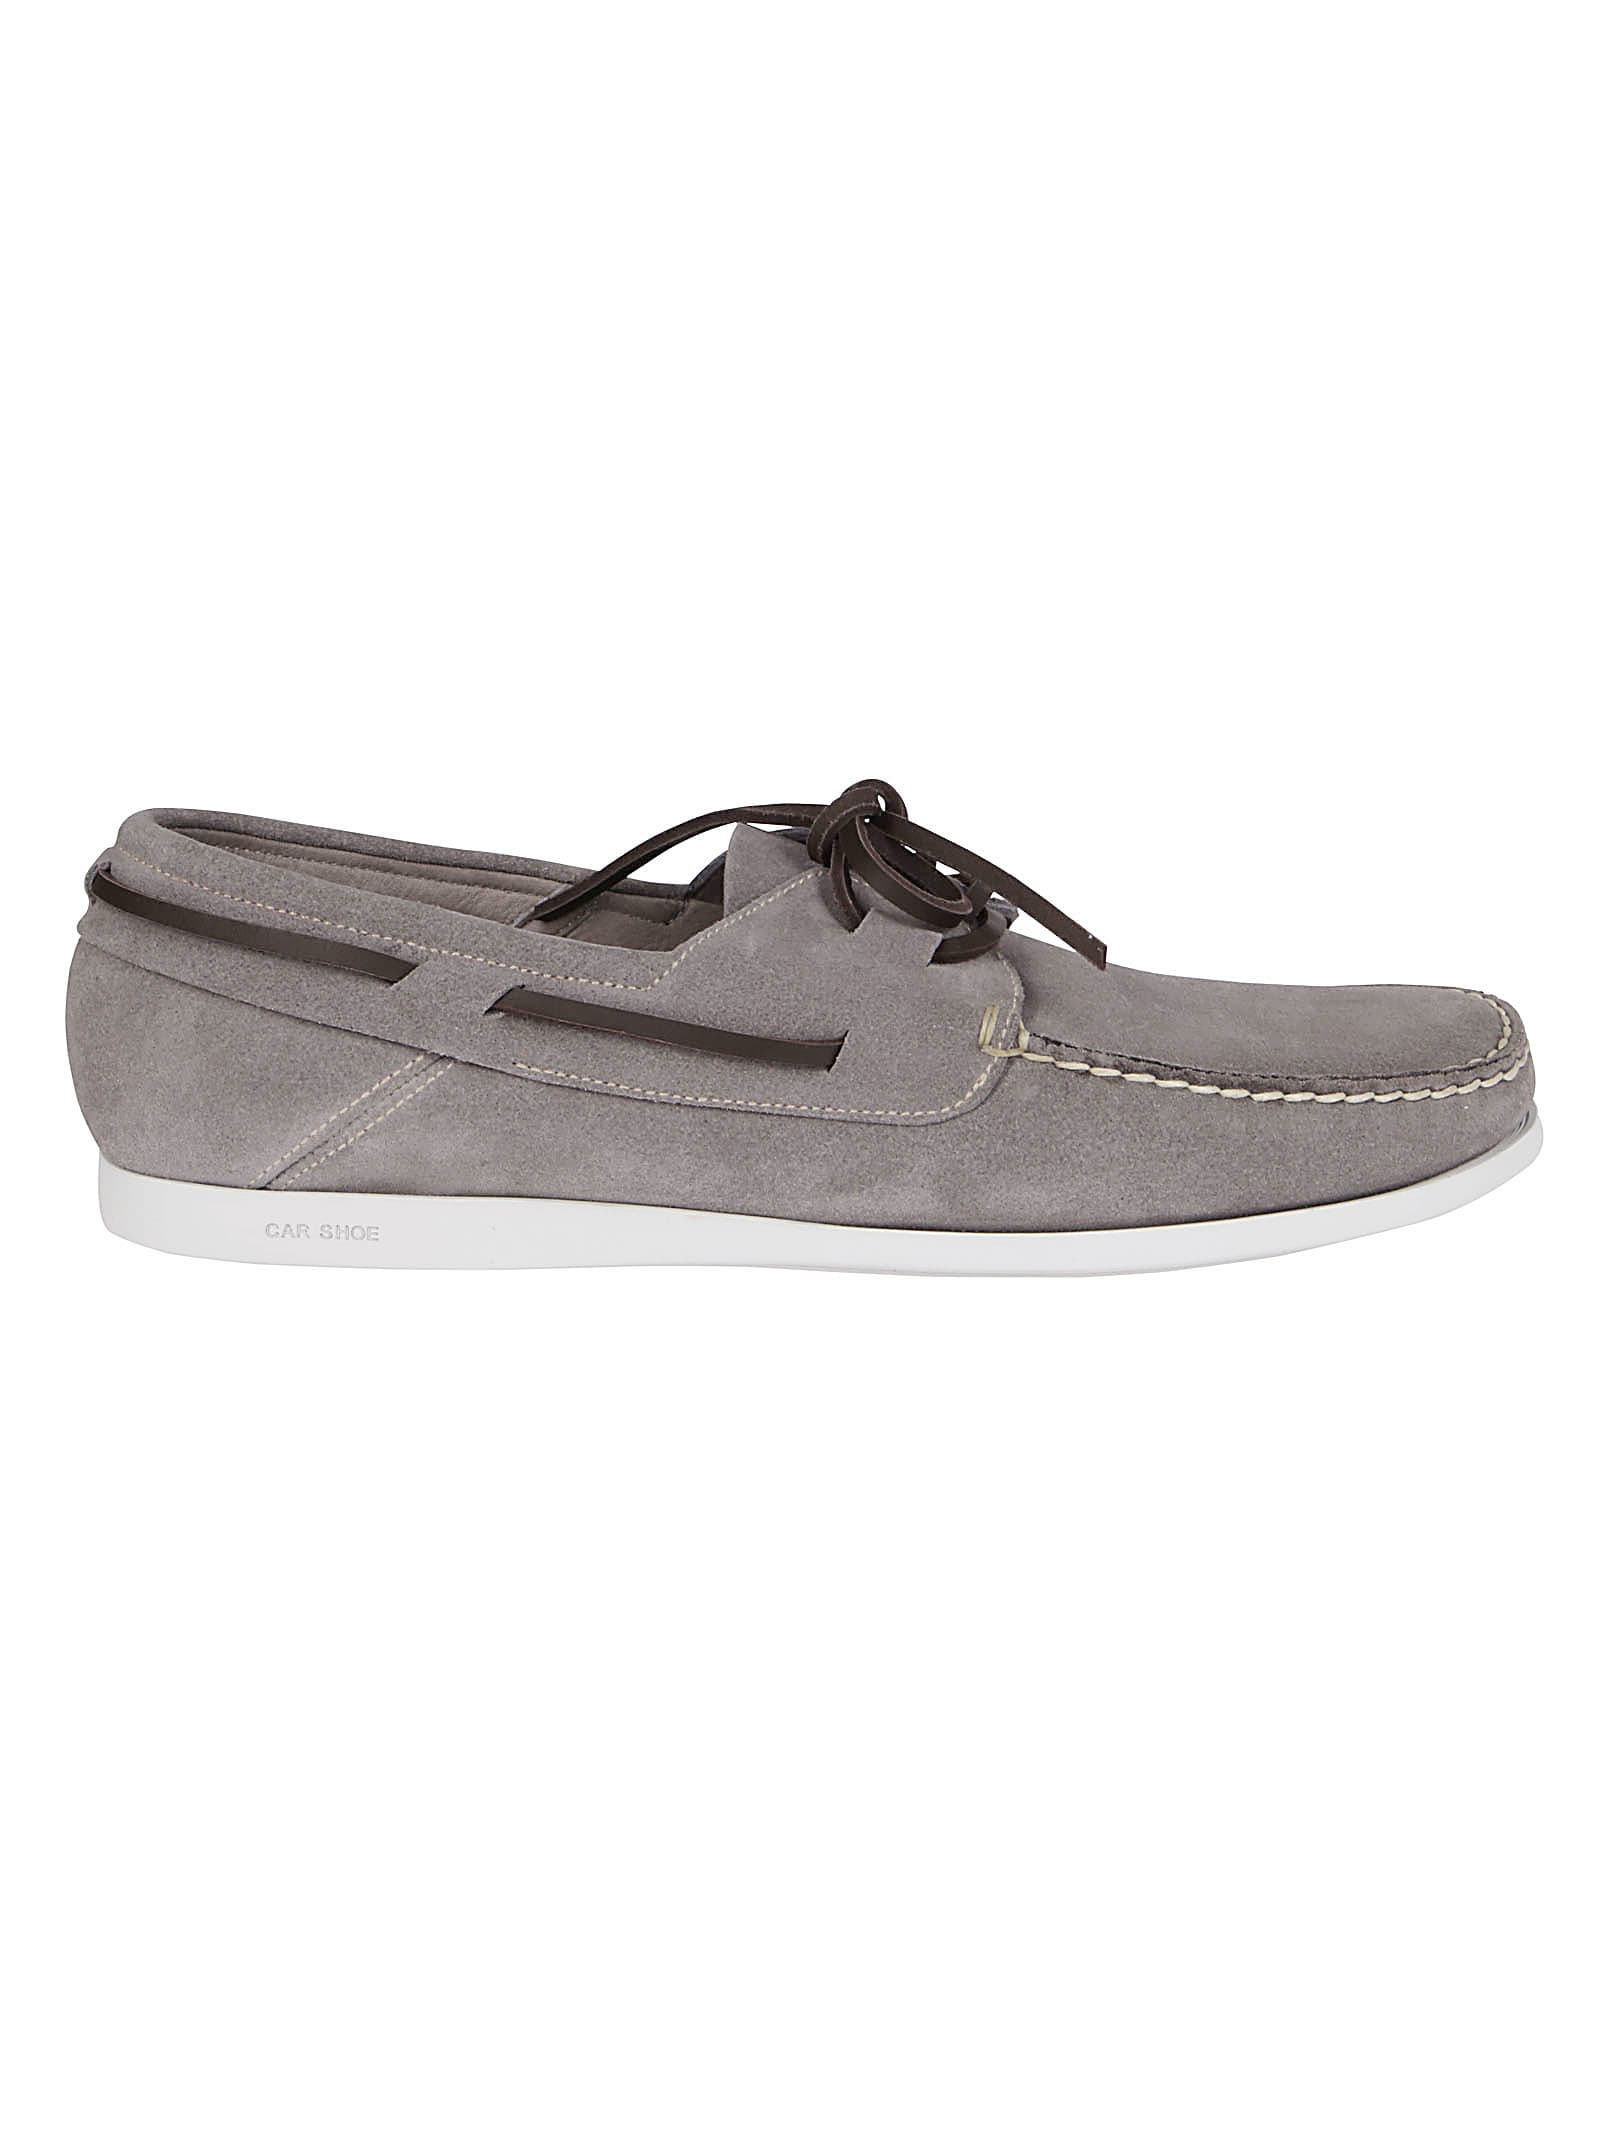 Car Shoe Grey Leather Loafers